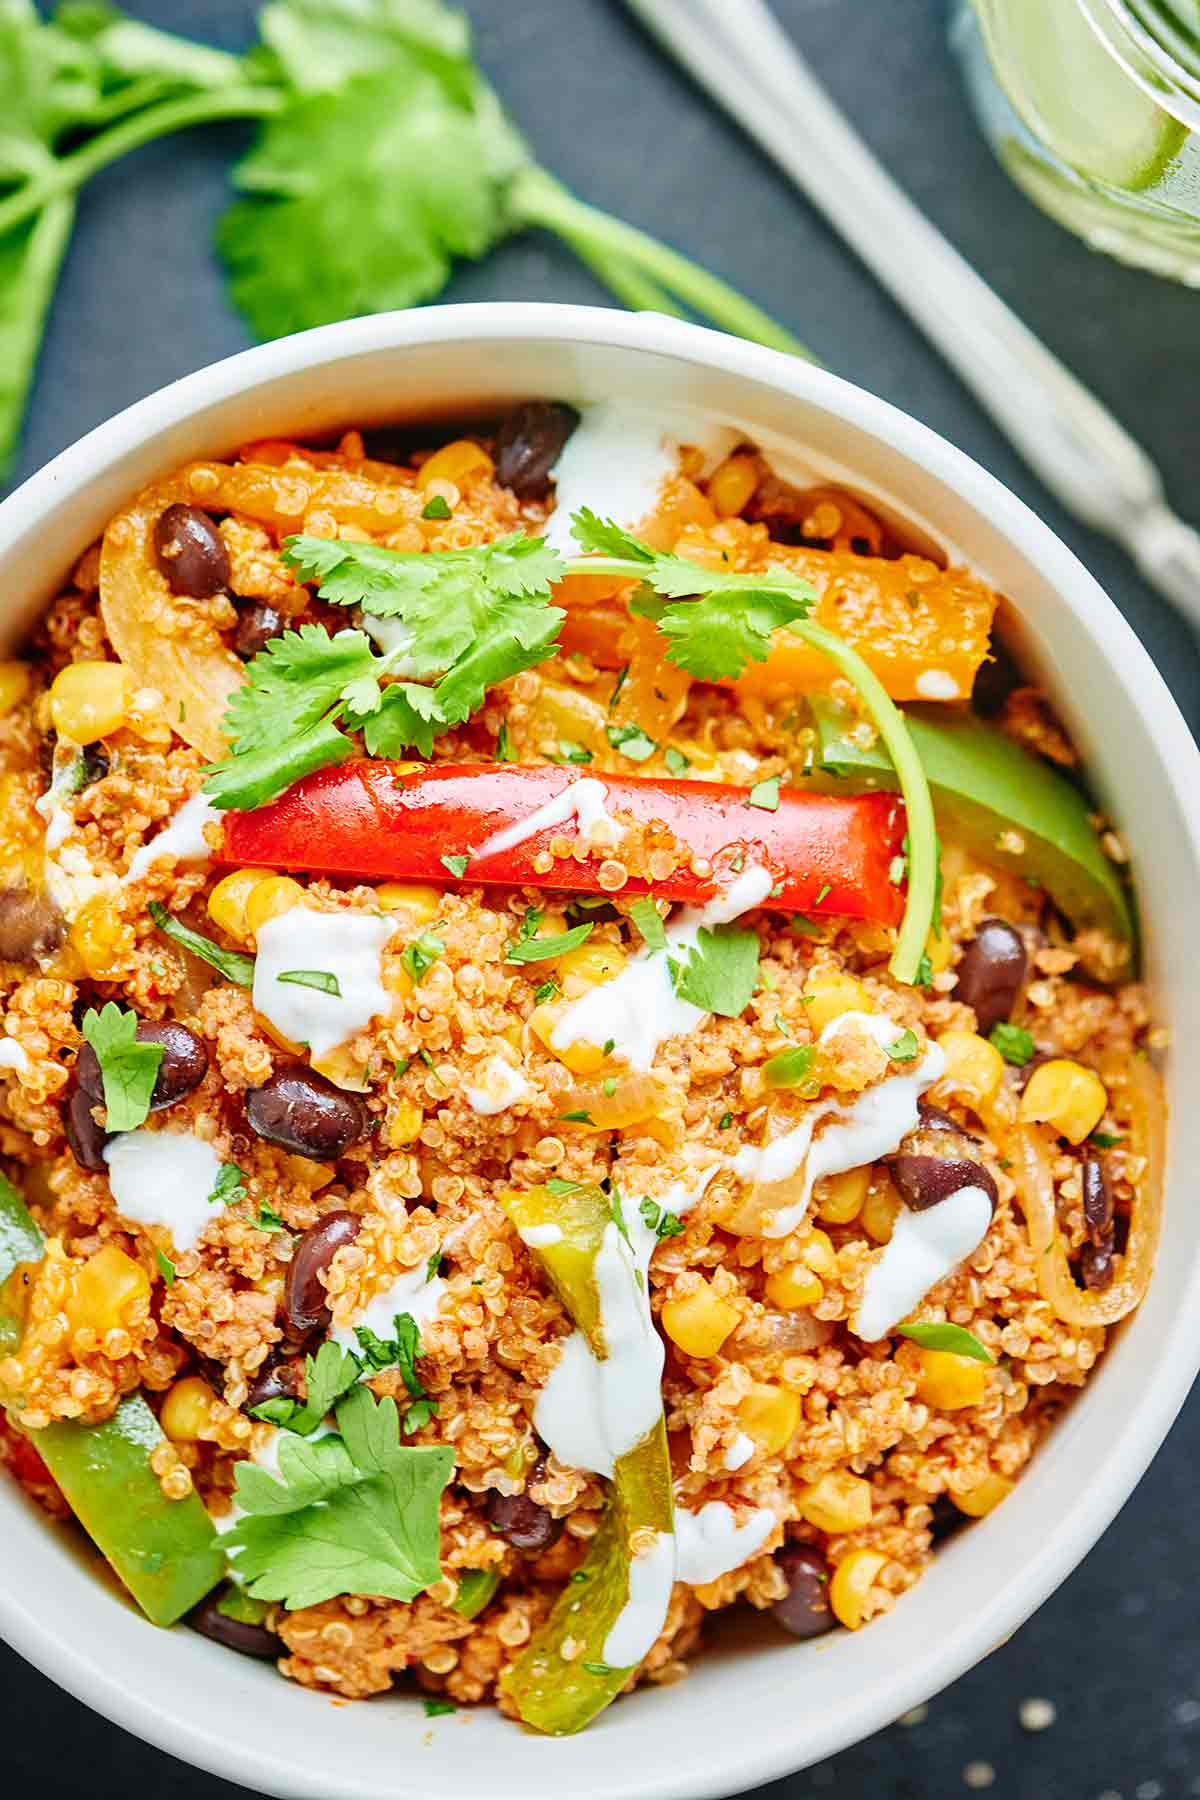 This Healthy Mexican Casserole is full of good for you ingredients like ground turkey, quinoa, black beans & bell peppers! Healthy Mexican food? Yes please! showmetheyummy.com #mexican #healthy #casserole #quinoa #glutenfree